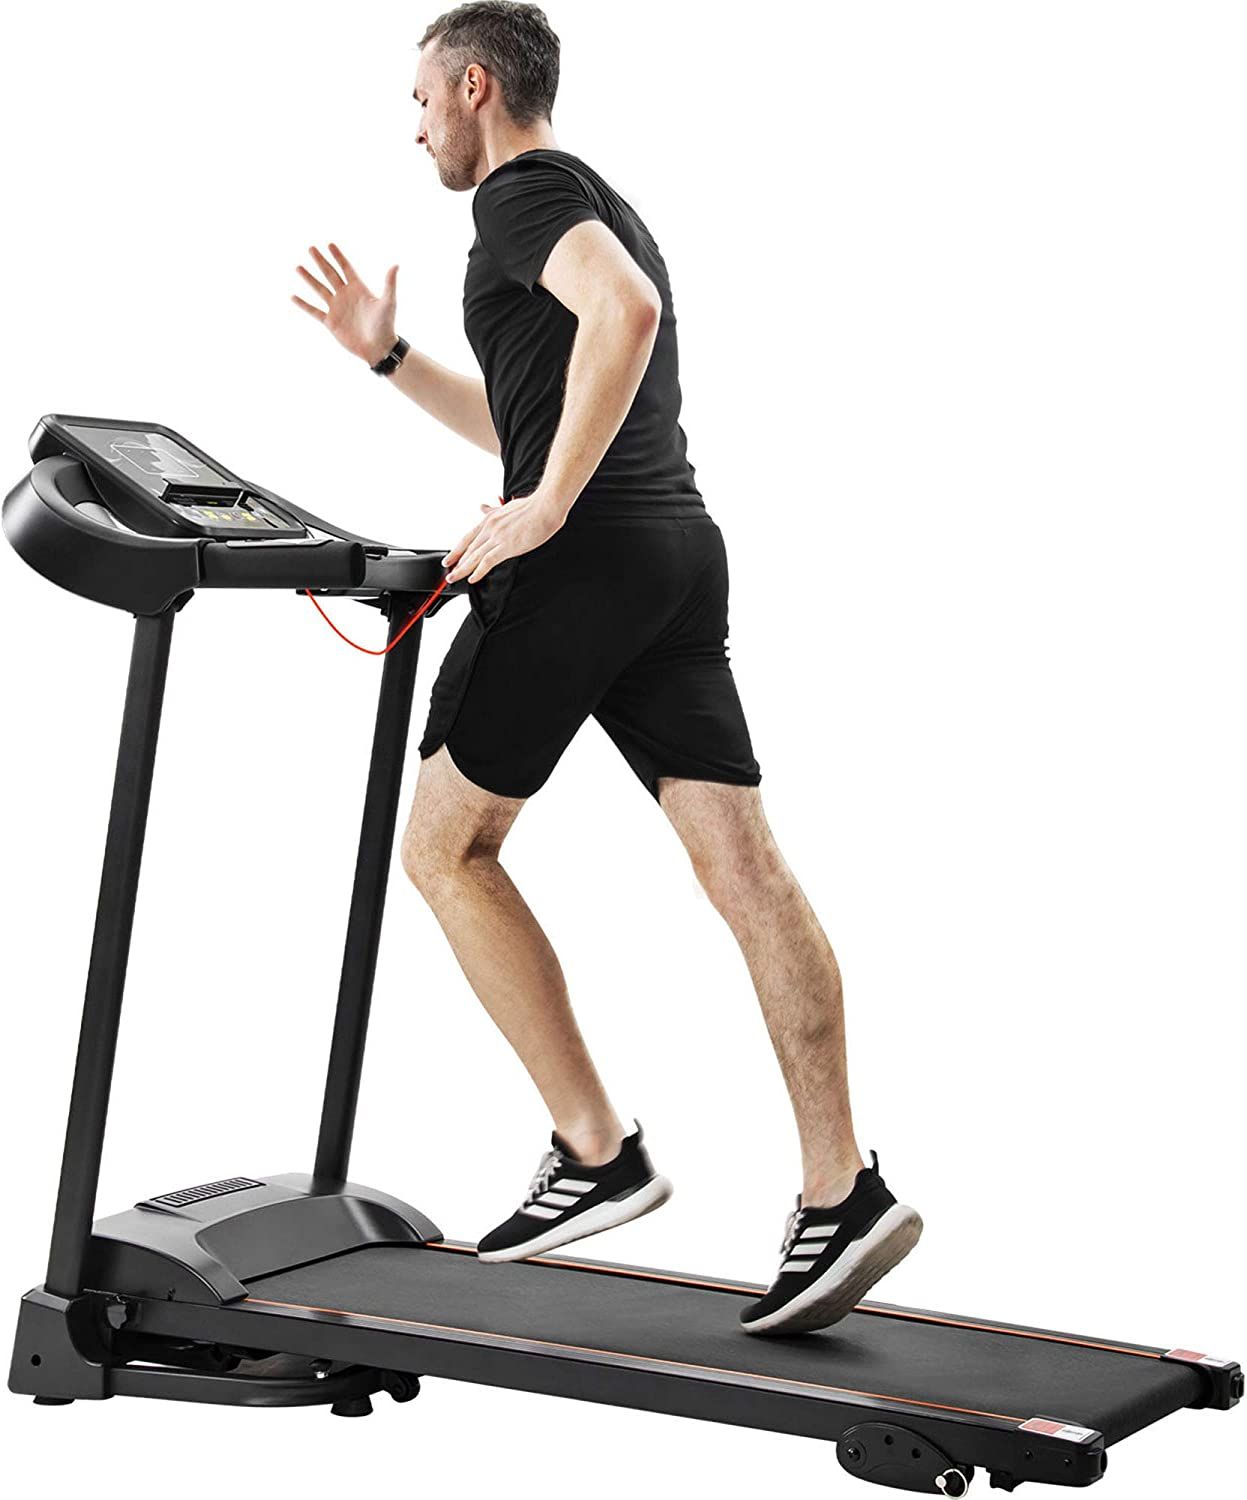 Modern Compact Electric Under blast sales Treadmill with Mail order Adjuster Home G Speed for